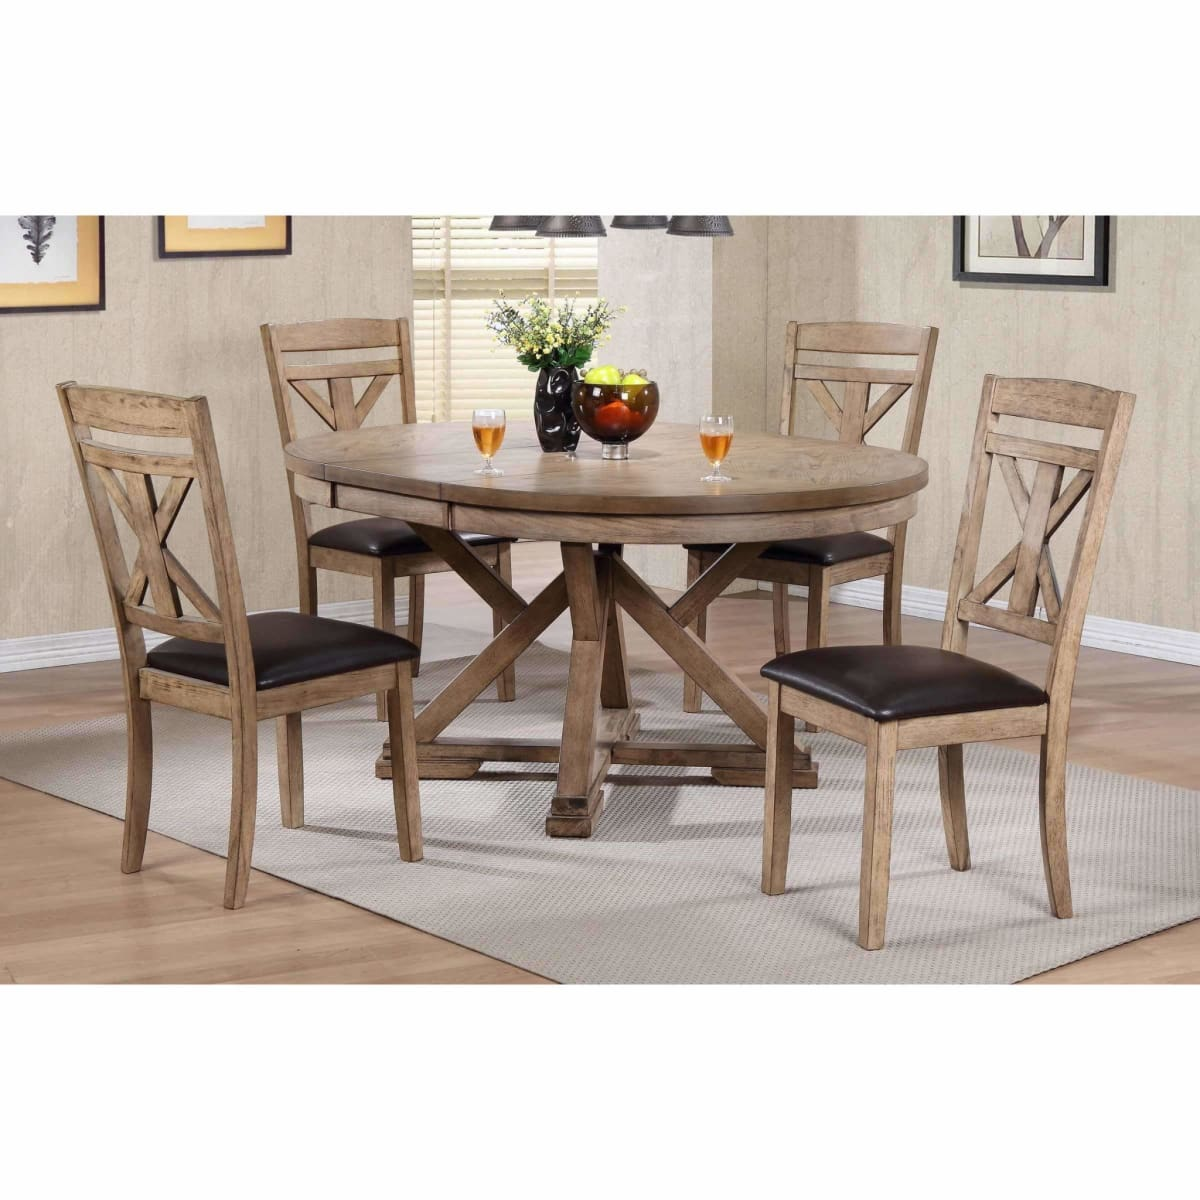 Grandview 66 Pedestal Table - DININGCOUNTERHEIGHT